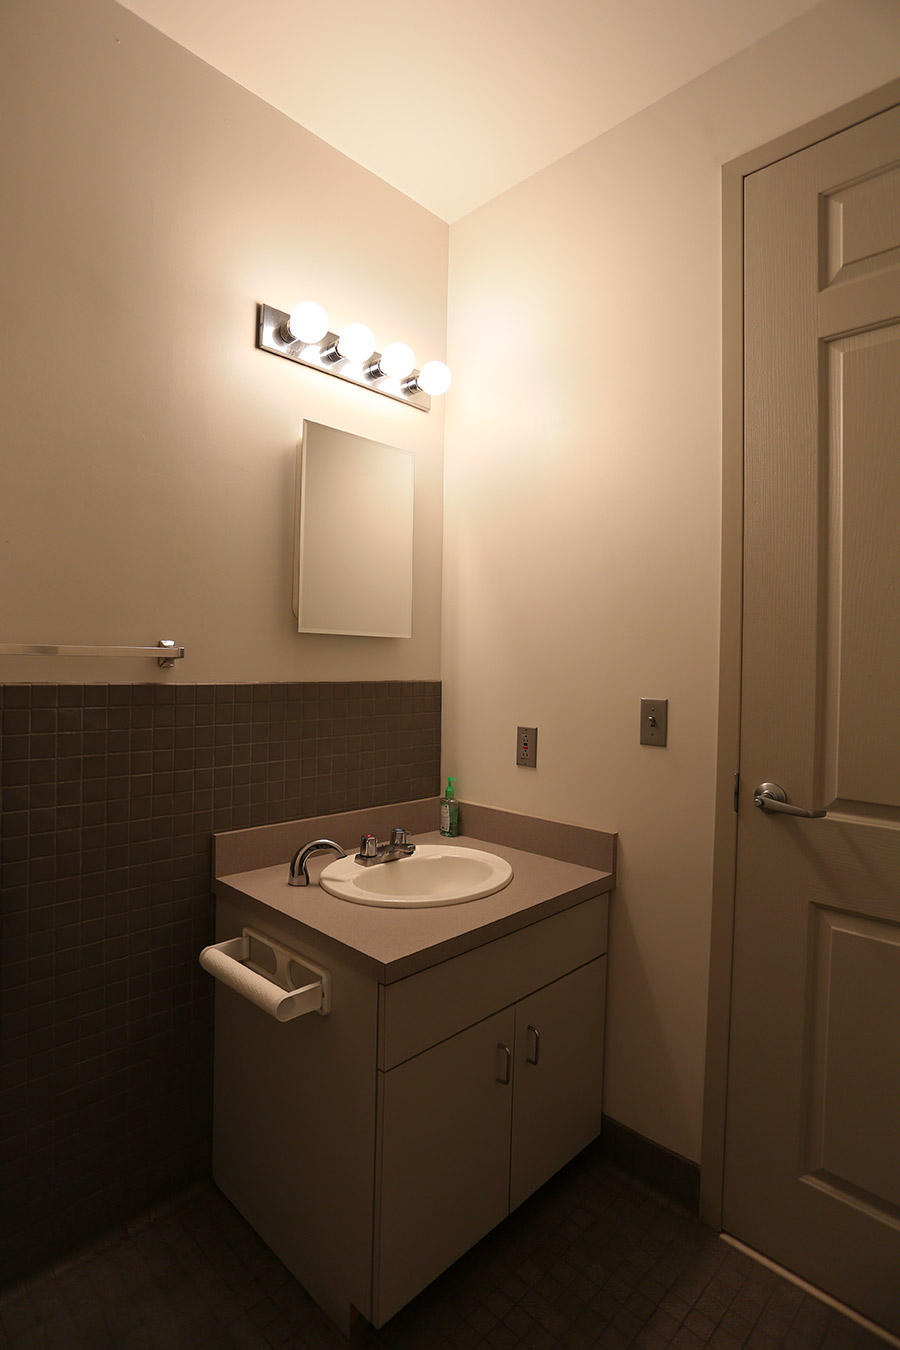 Bathroom fan with heater and light